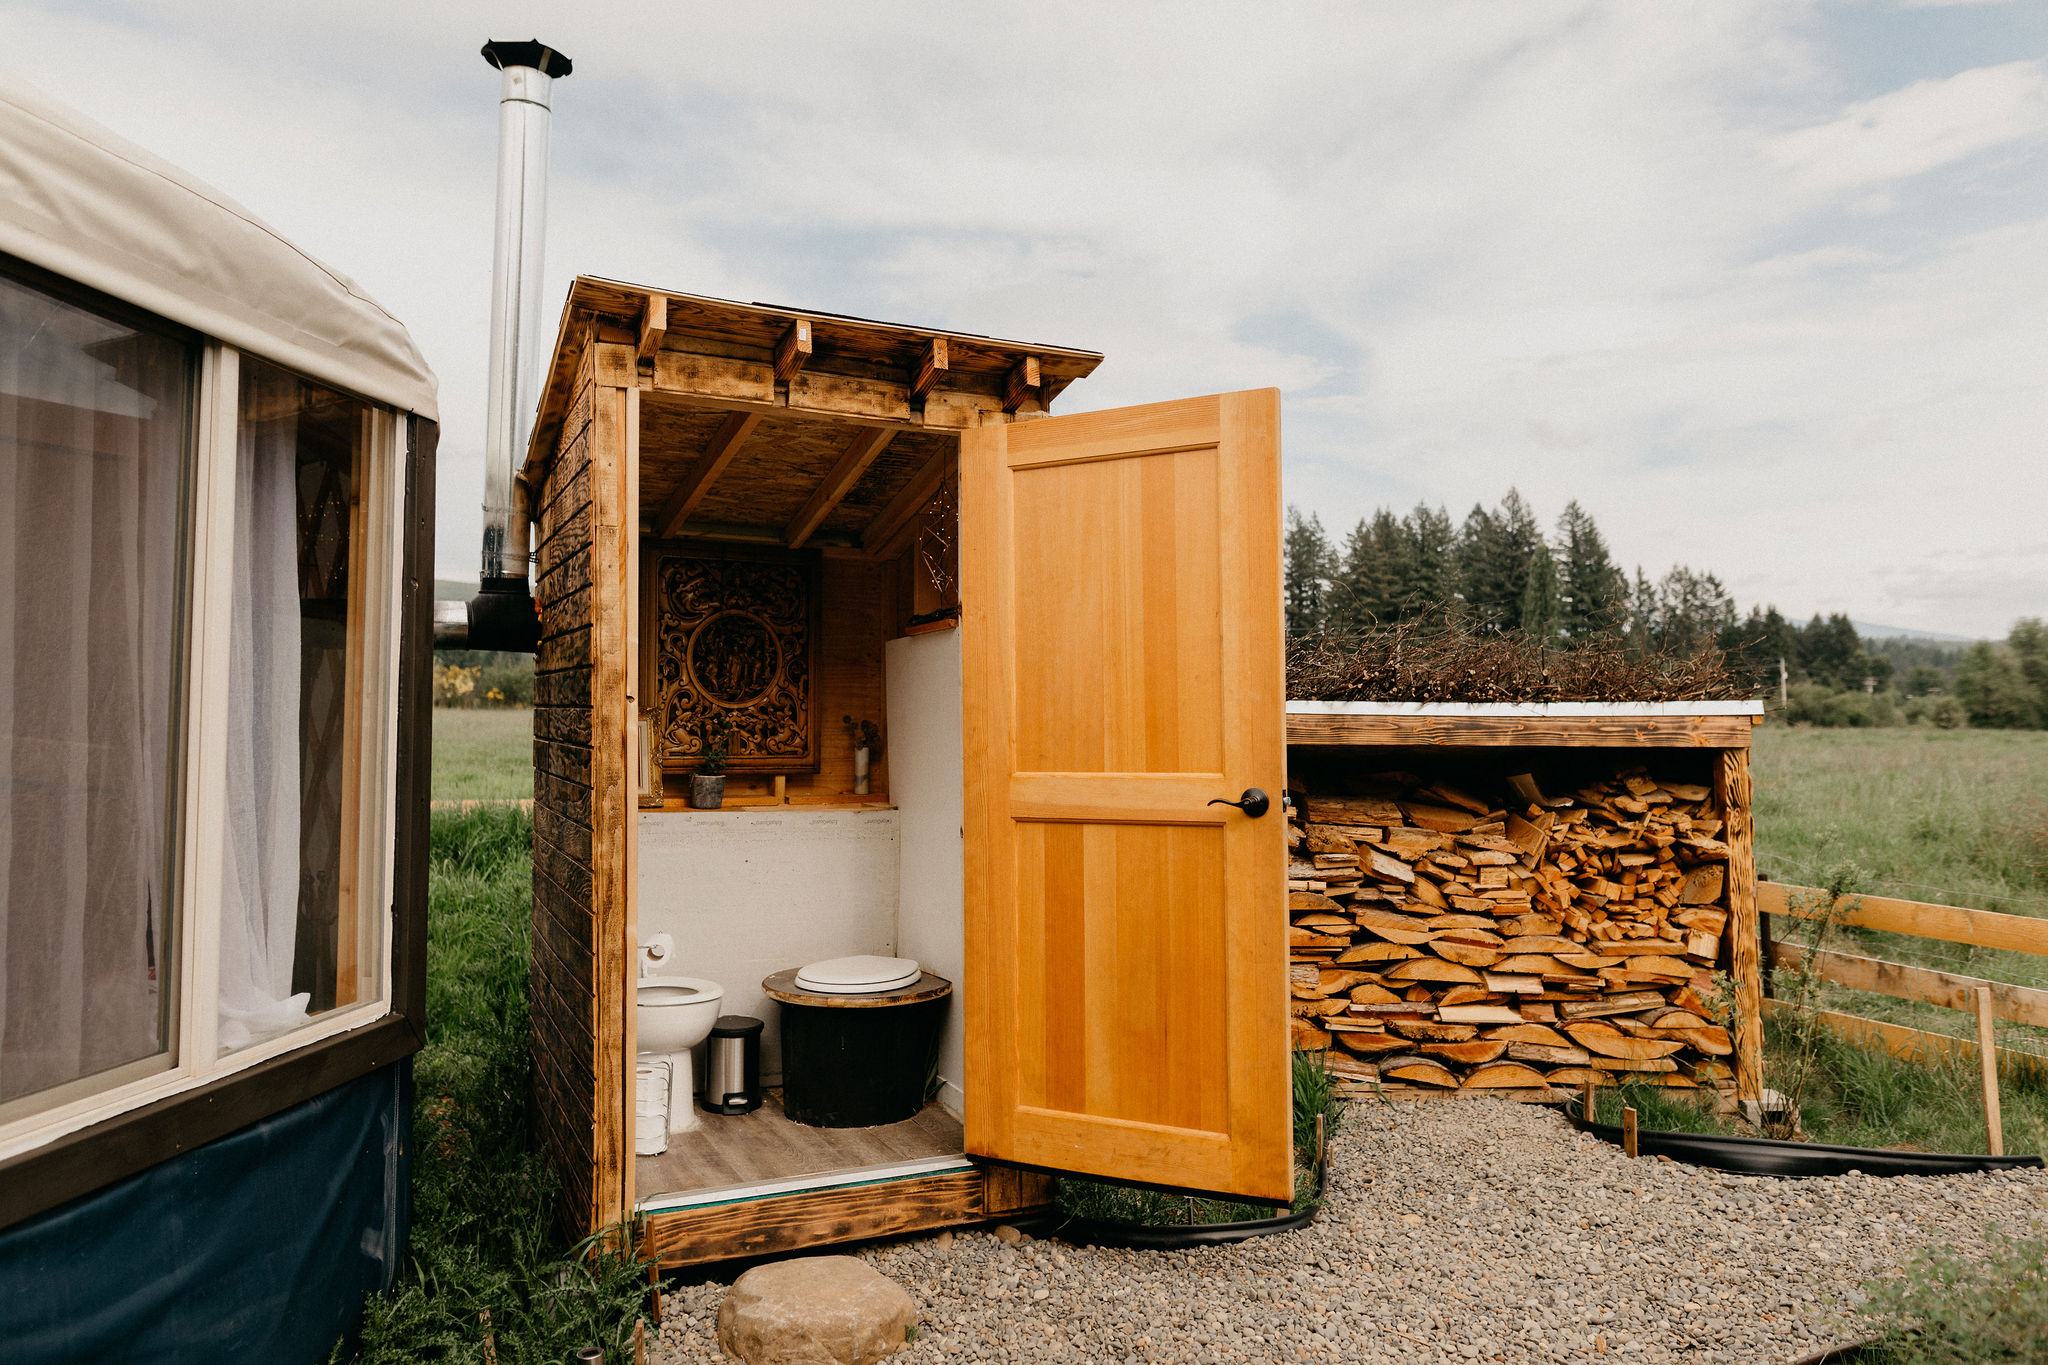 Composting toilet within easy distance.